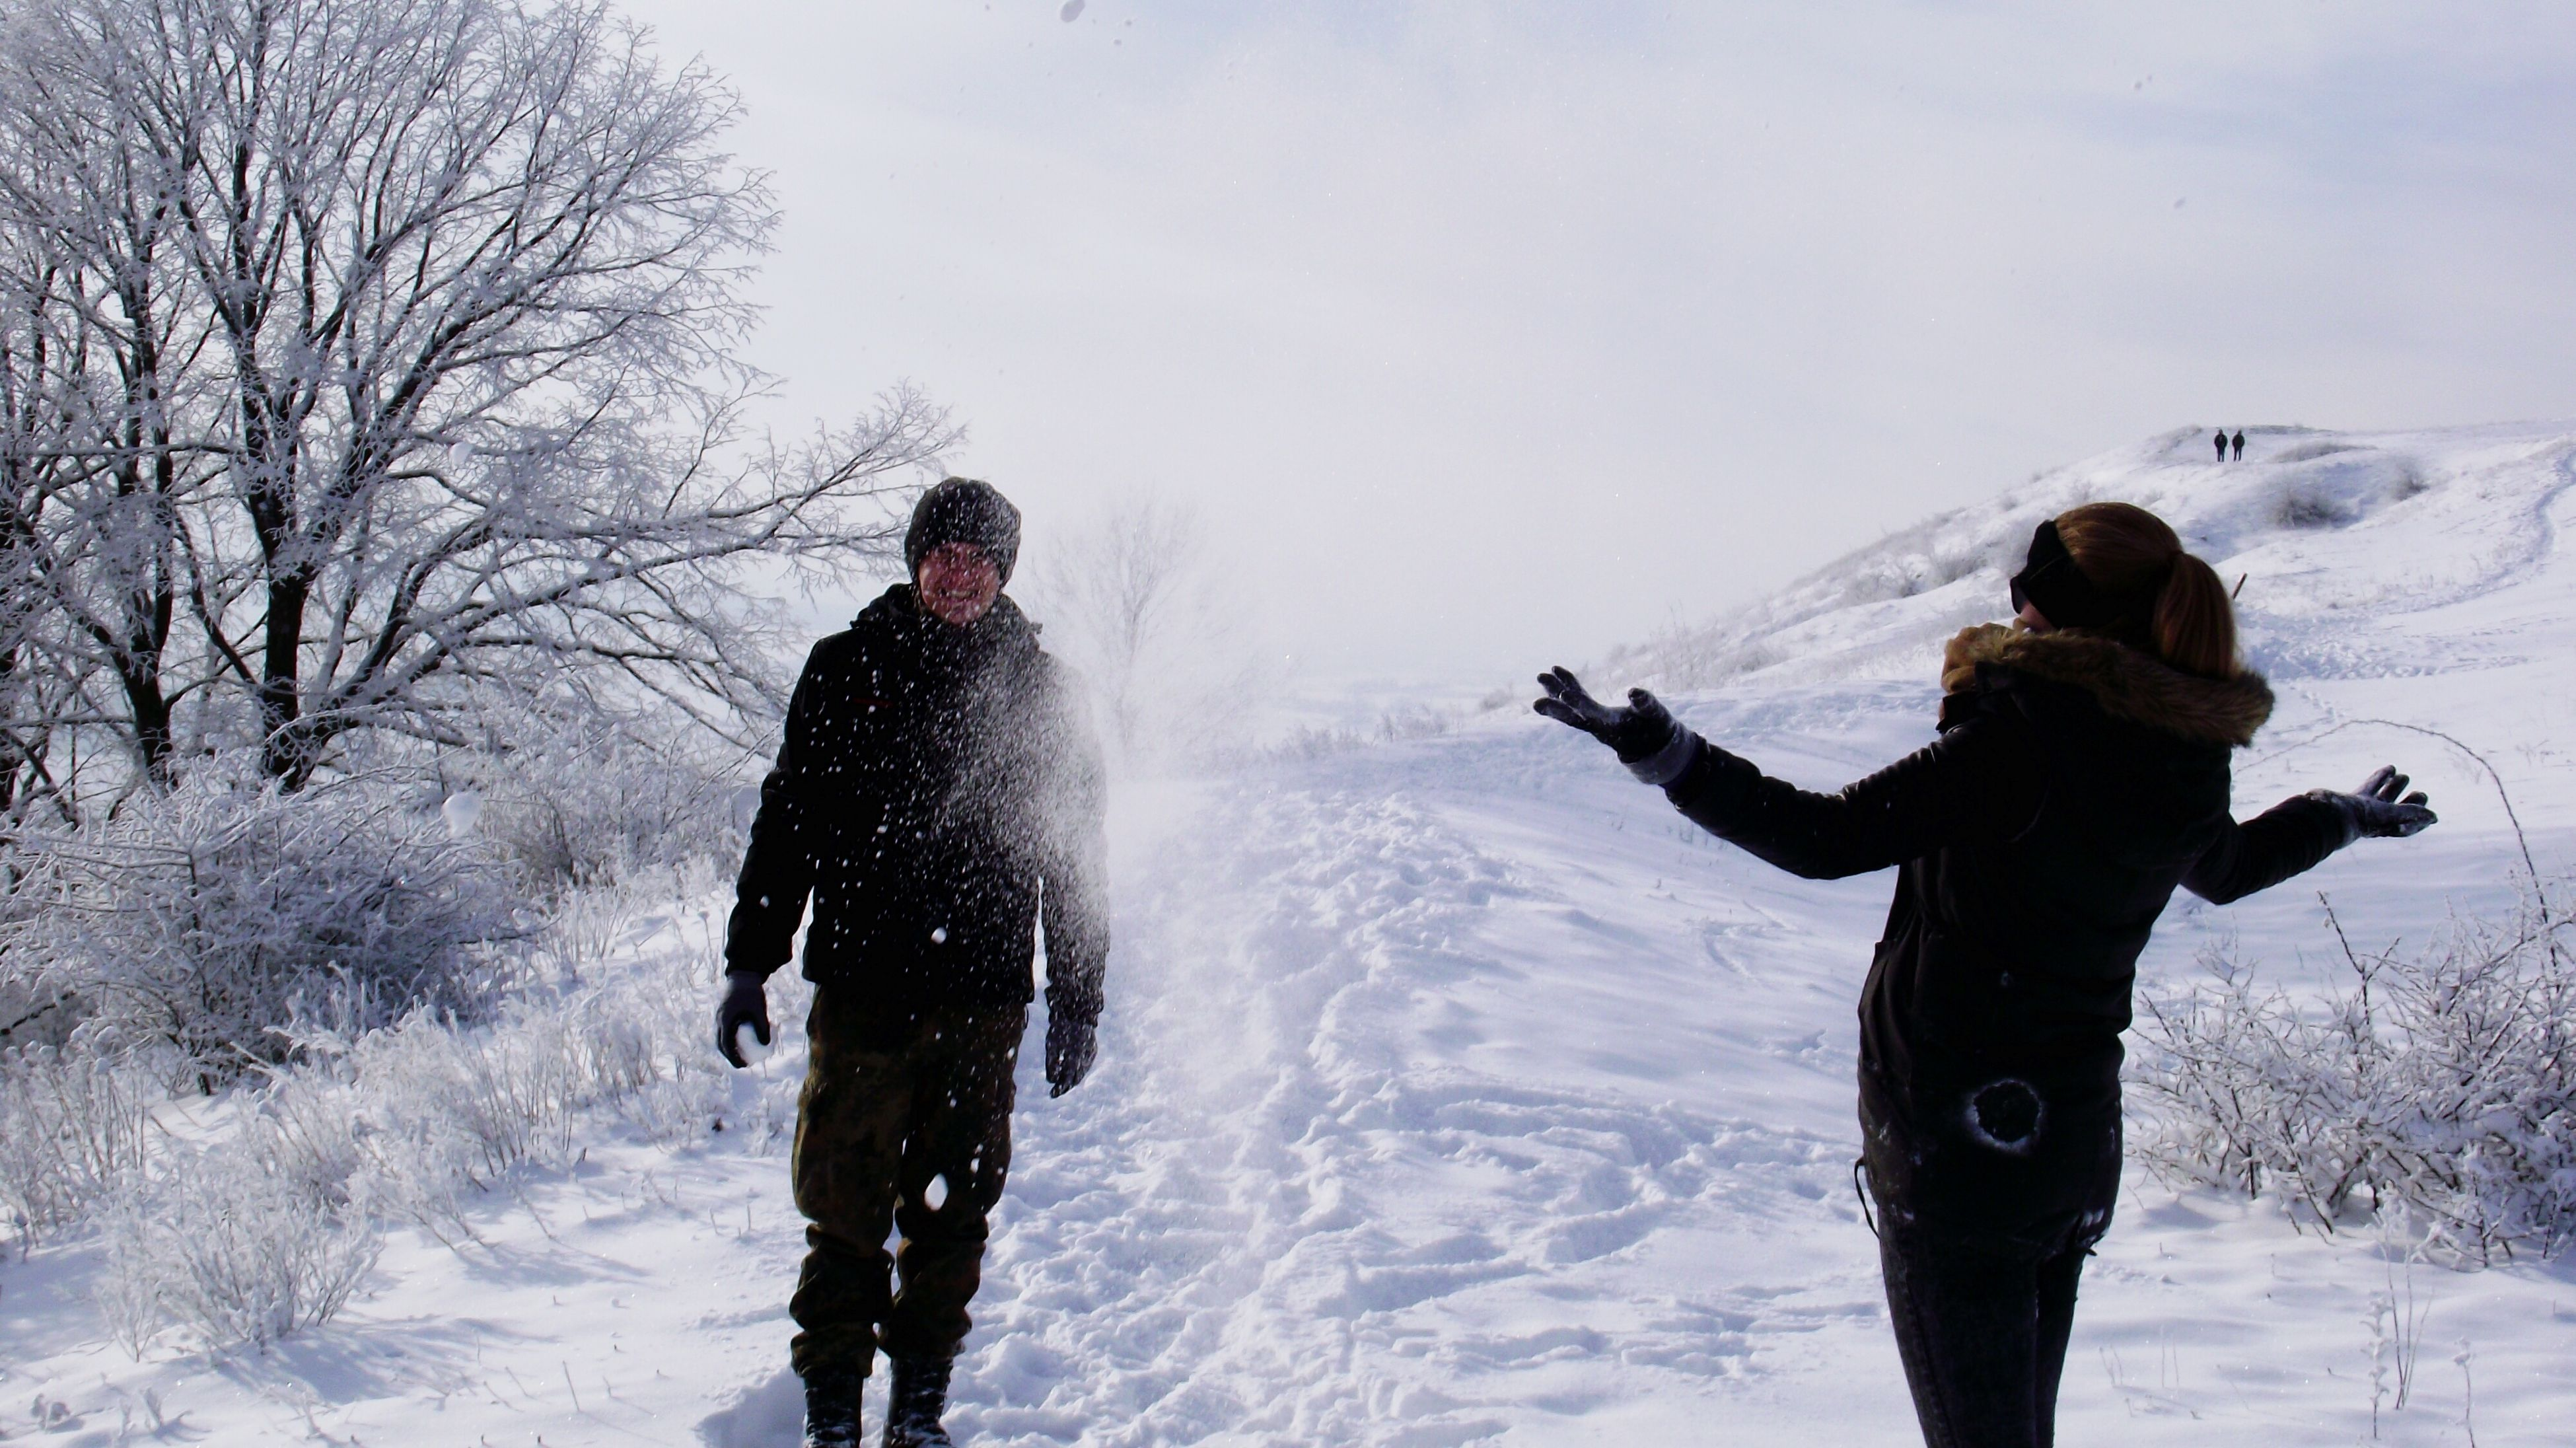 winter, lifestyles, snow, cold temperature, leisure activity, season, standing, full length, warm clothing, weather, three quarter length, rear view, water, casual clothing, togetherness, nature, field